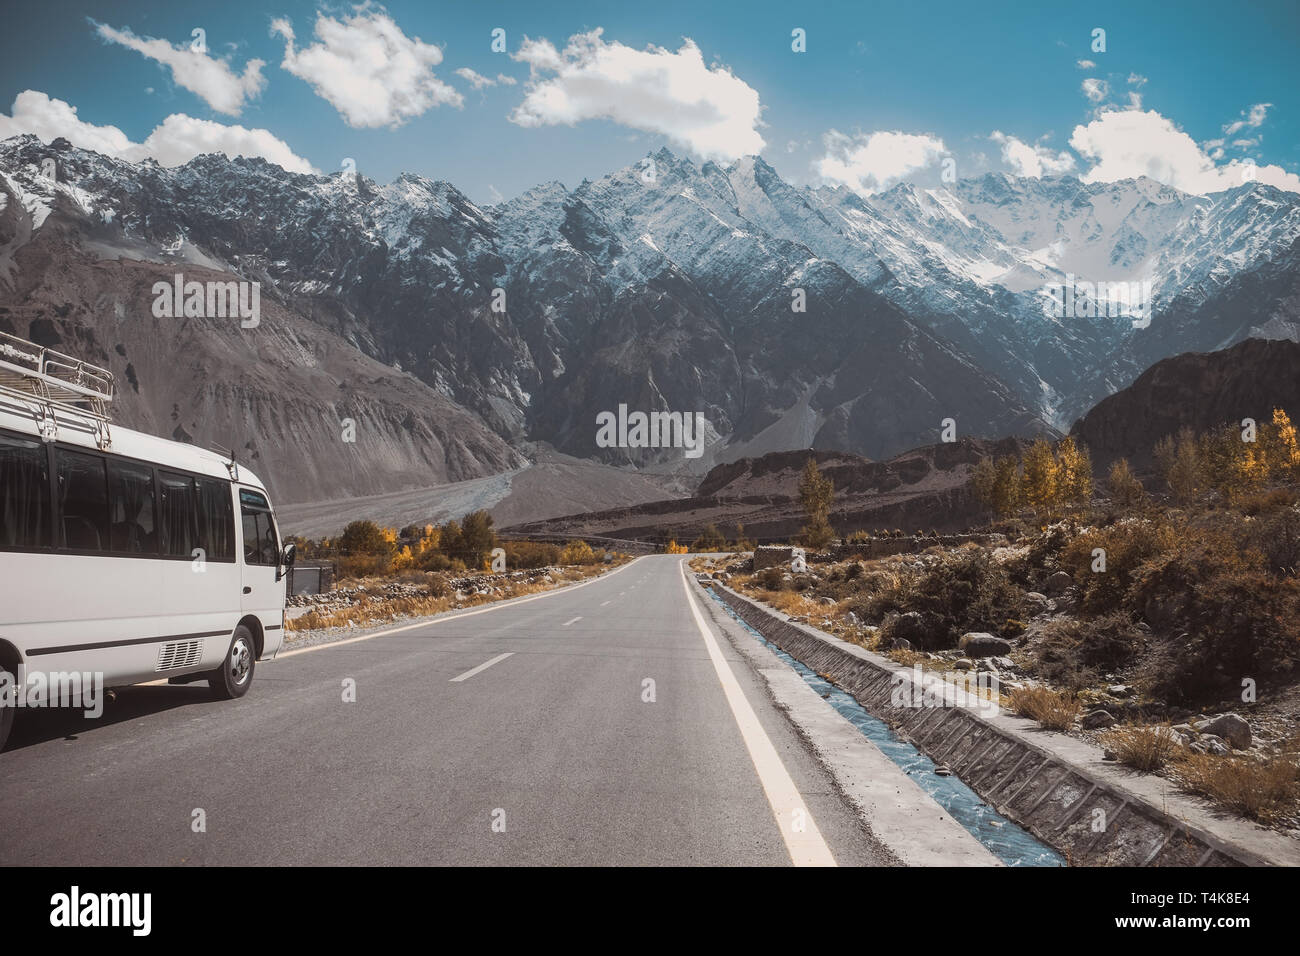 Paved road in Passu with a view of snow capped mountain range, Karakoram highway in Gojal Hunza. Gilgit Baltistan, Pakistan. Stock Photo